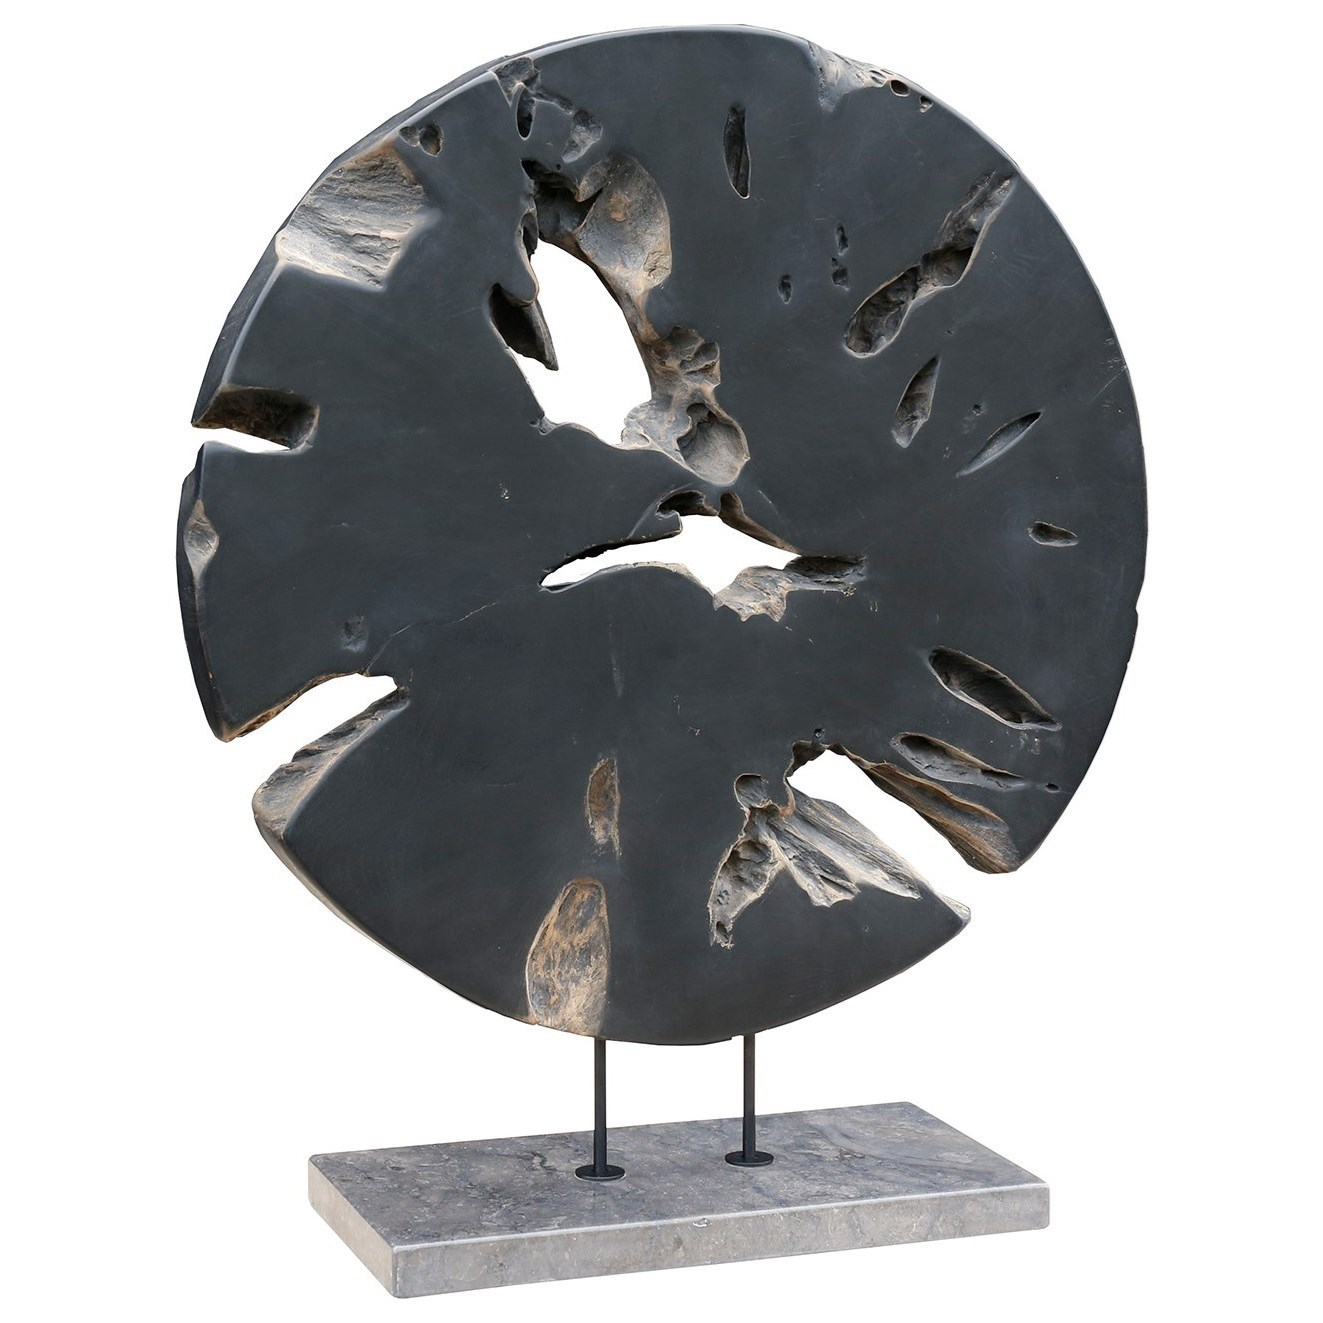 Sculptures Round Teak Wood Art Weathered Grey Large by Moe's Home Collection at Stoney Creek Furniture